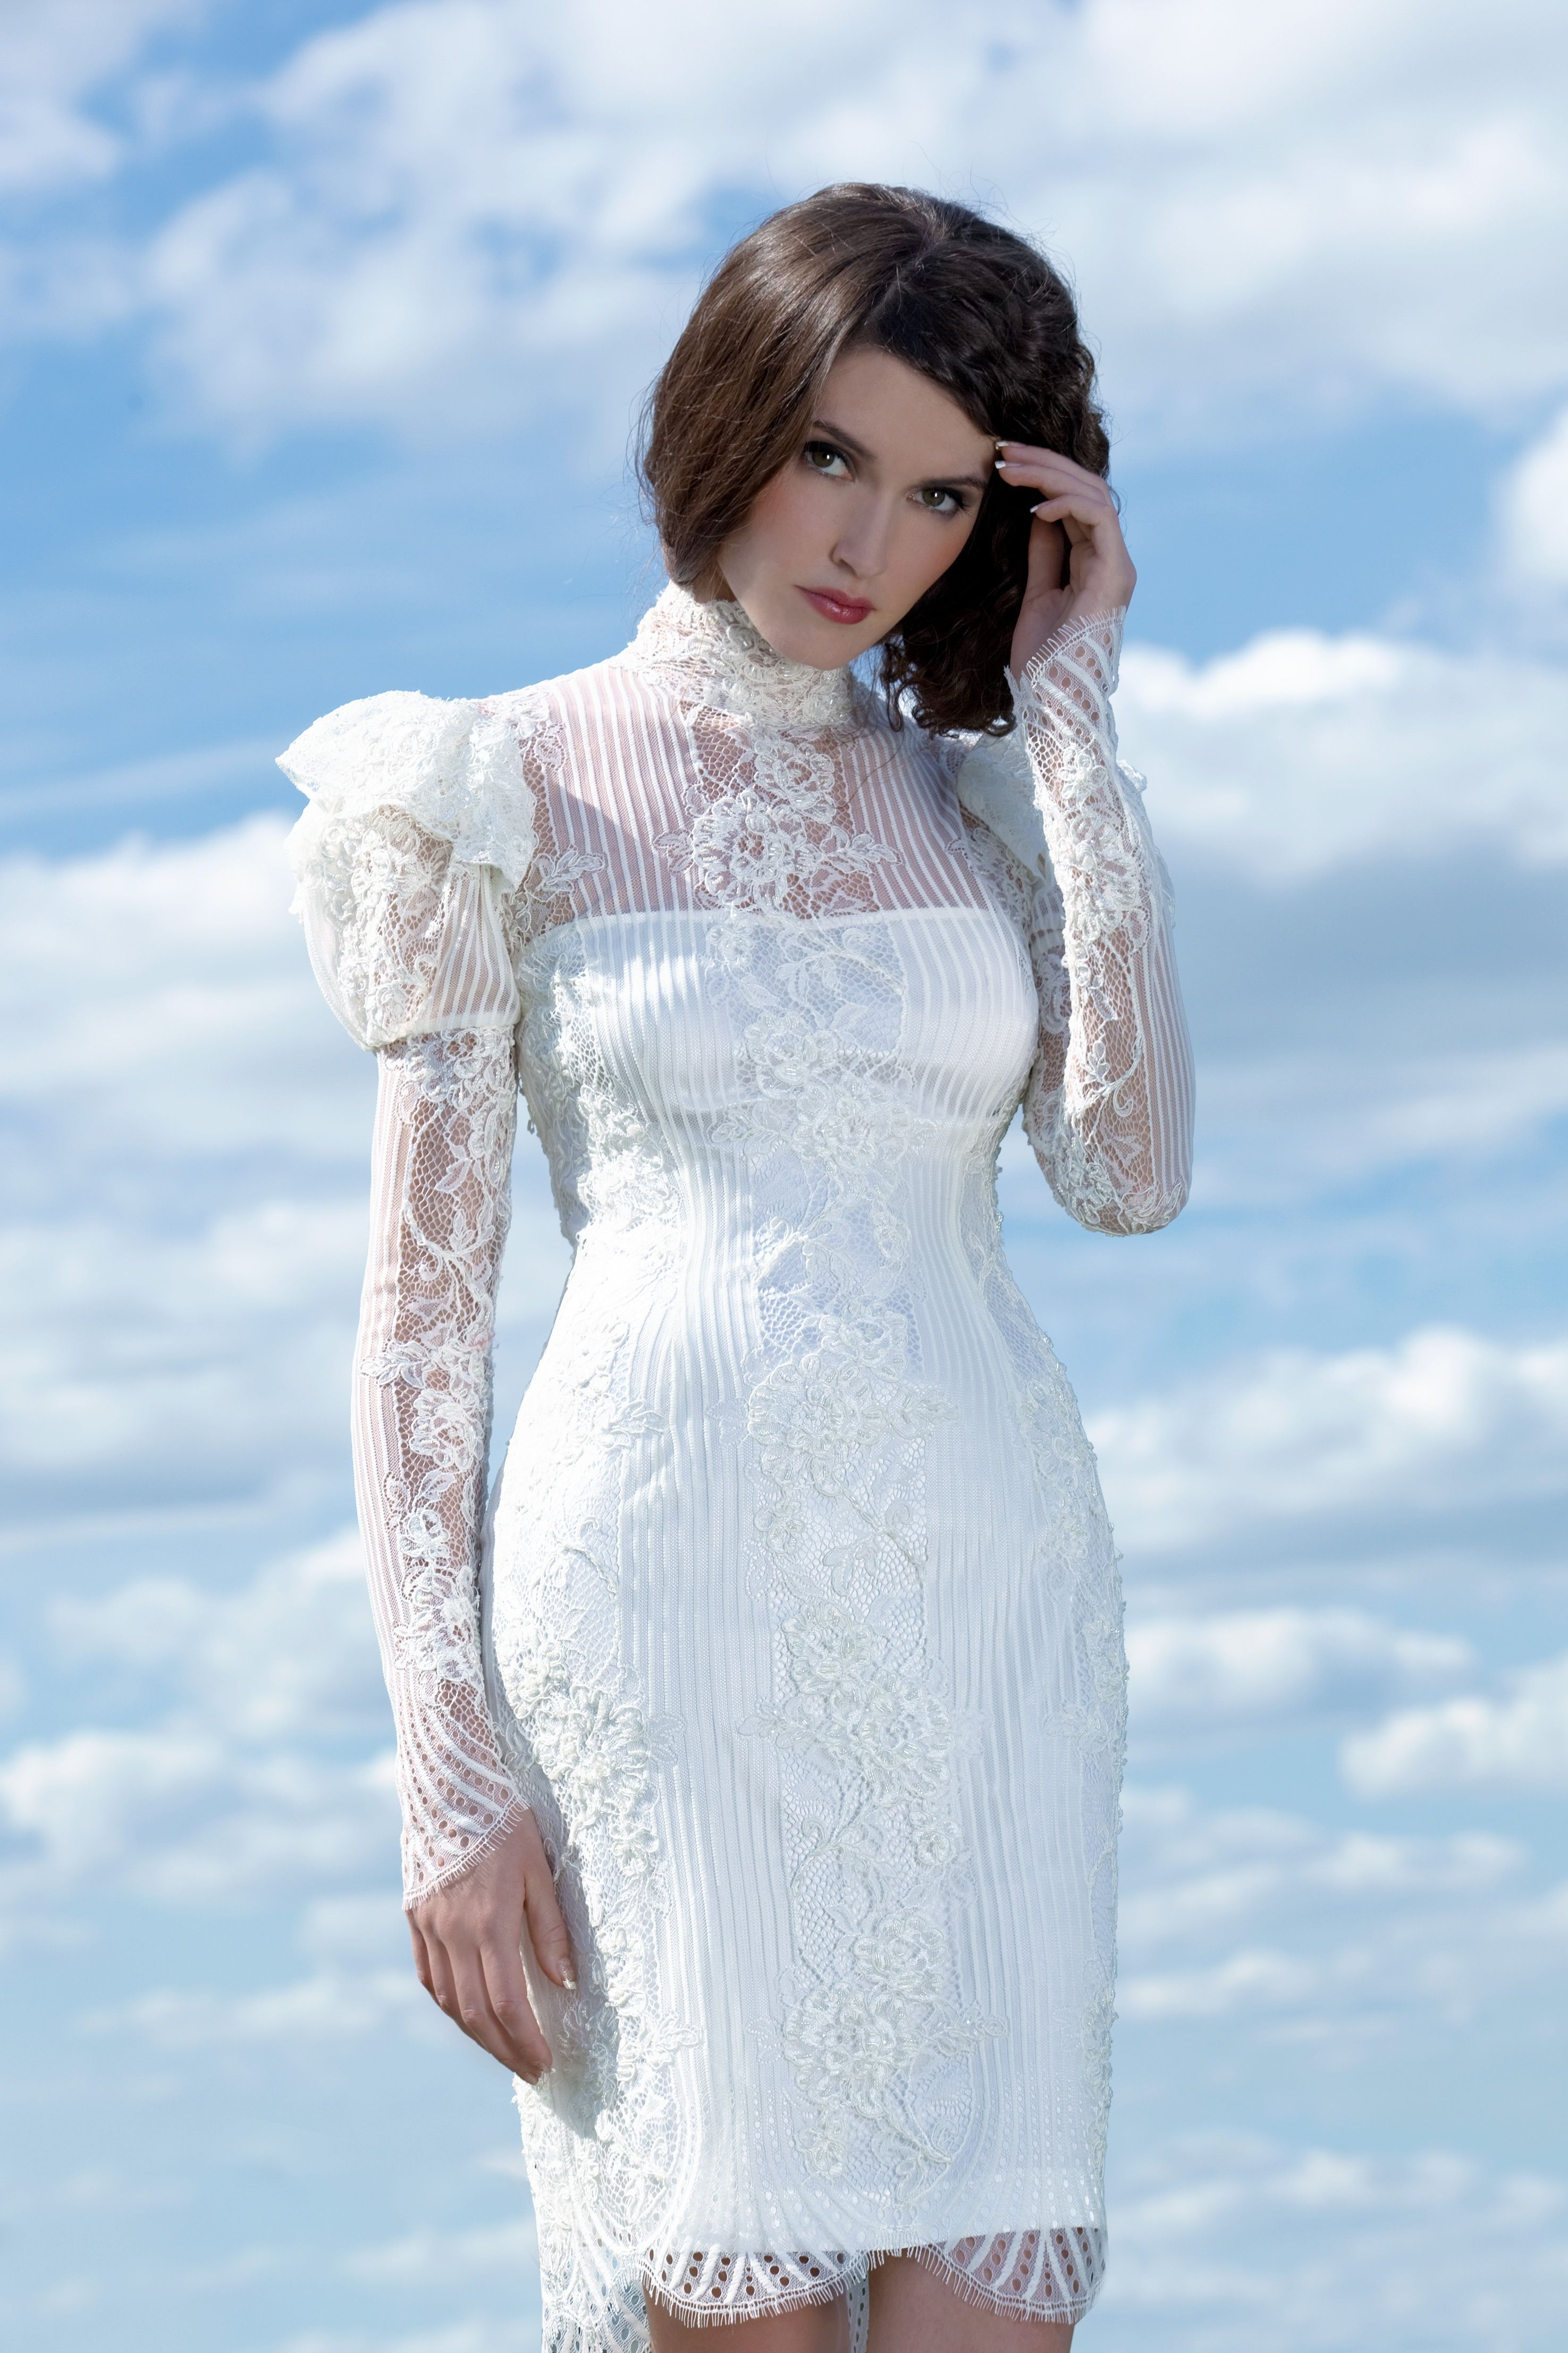 This chantilly lace dress with long sleeves can be a great option